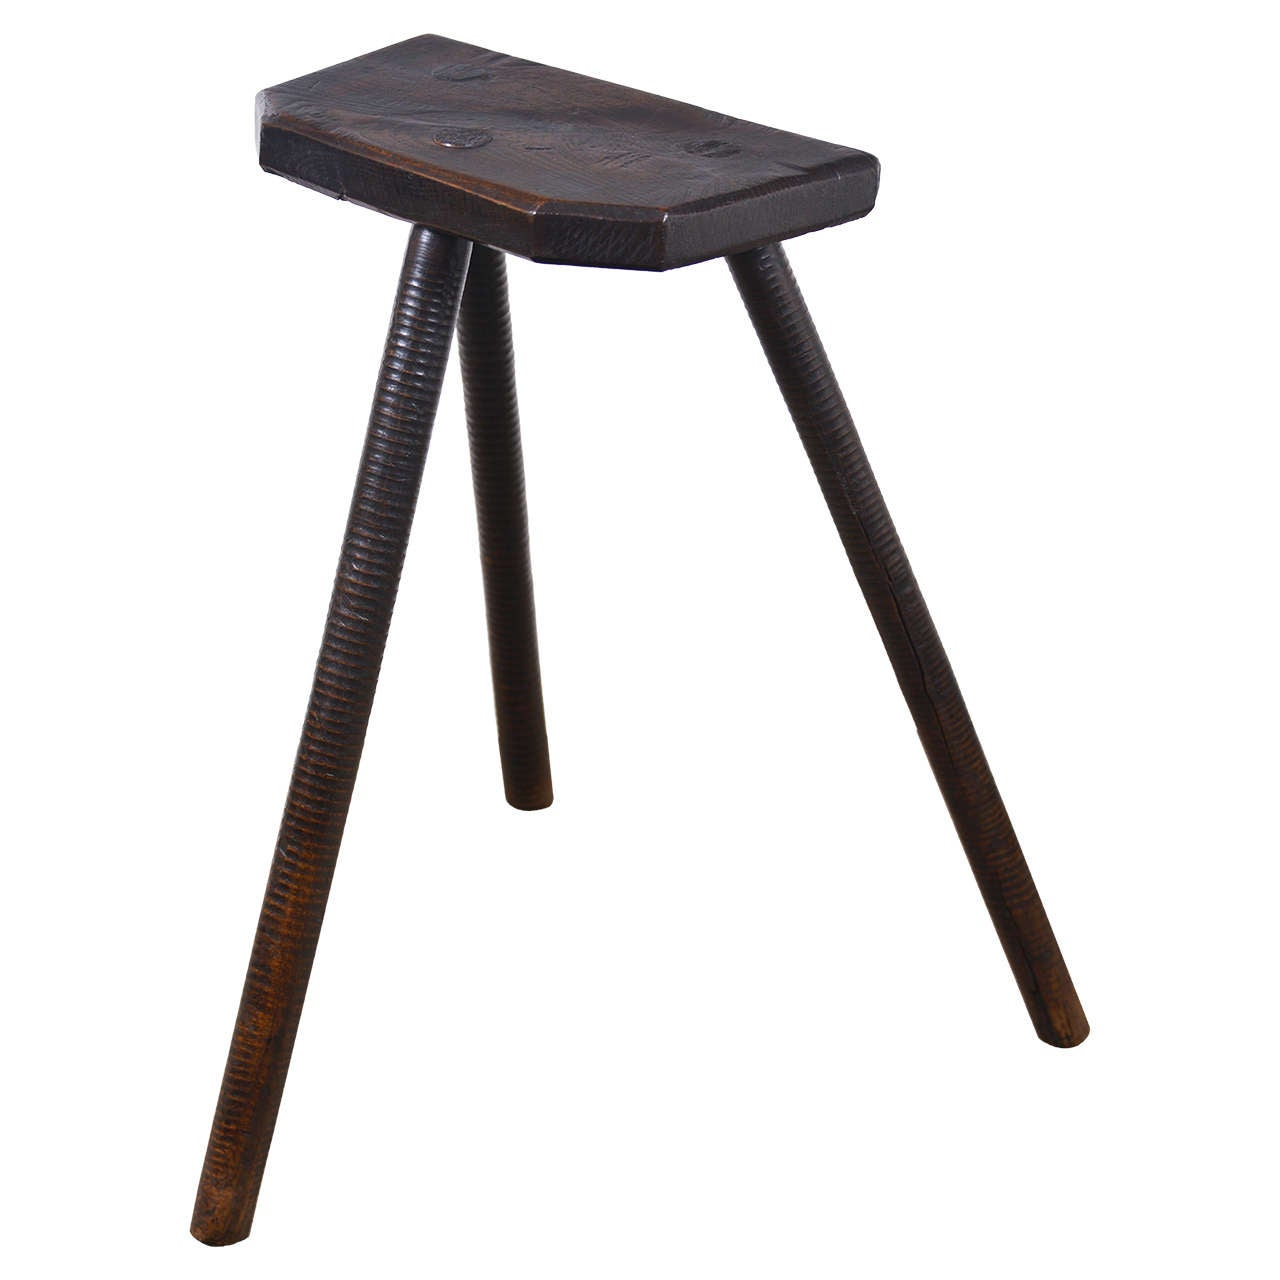 19th Century Cutleru0027s Stool From England For Sale